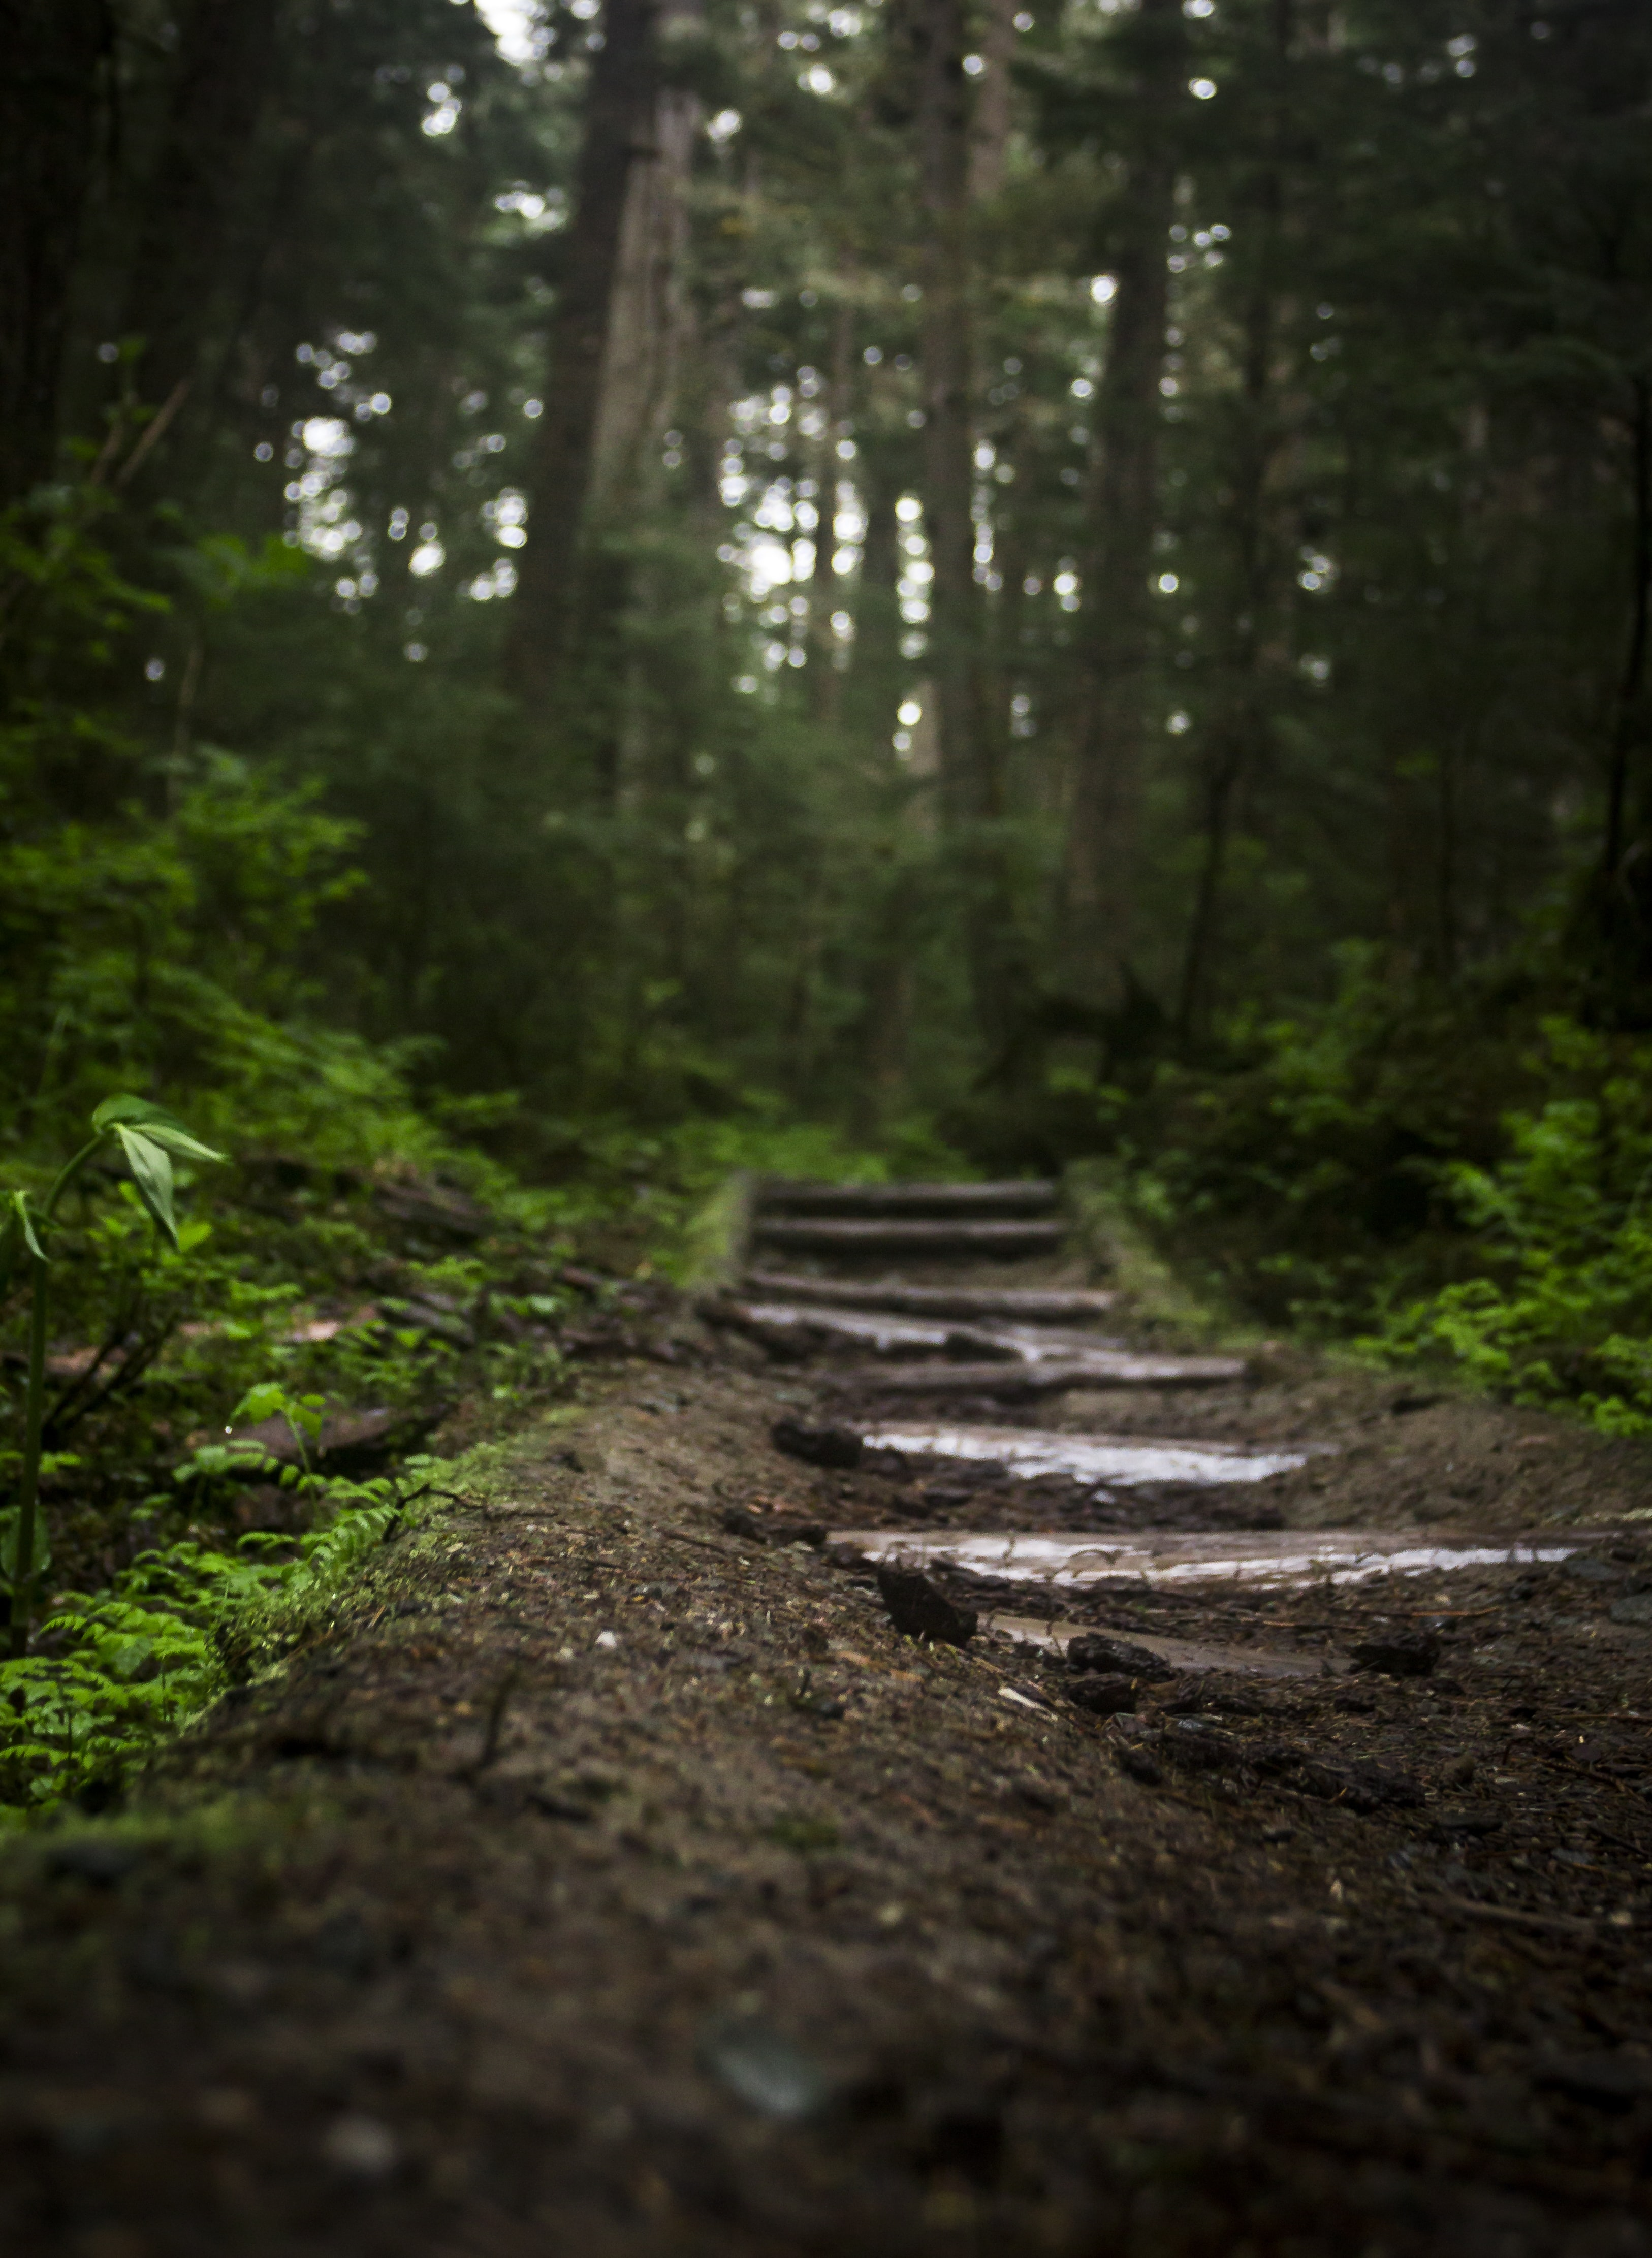 Wooden steps on a trail through a forest